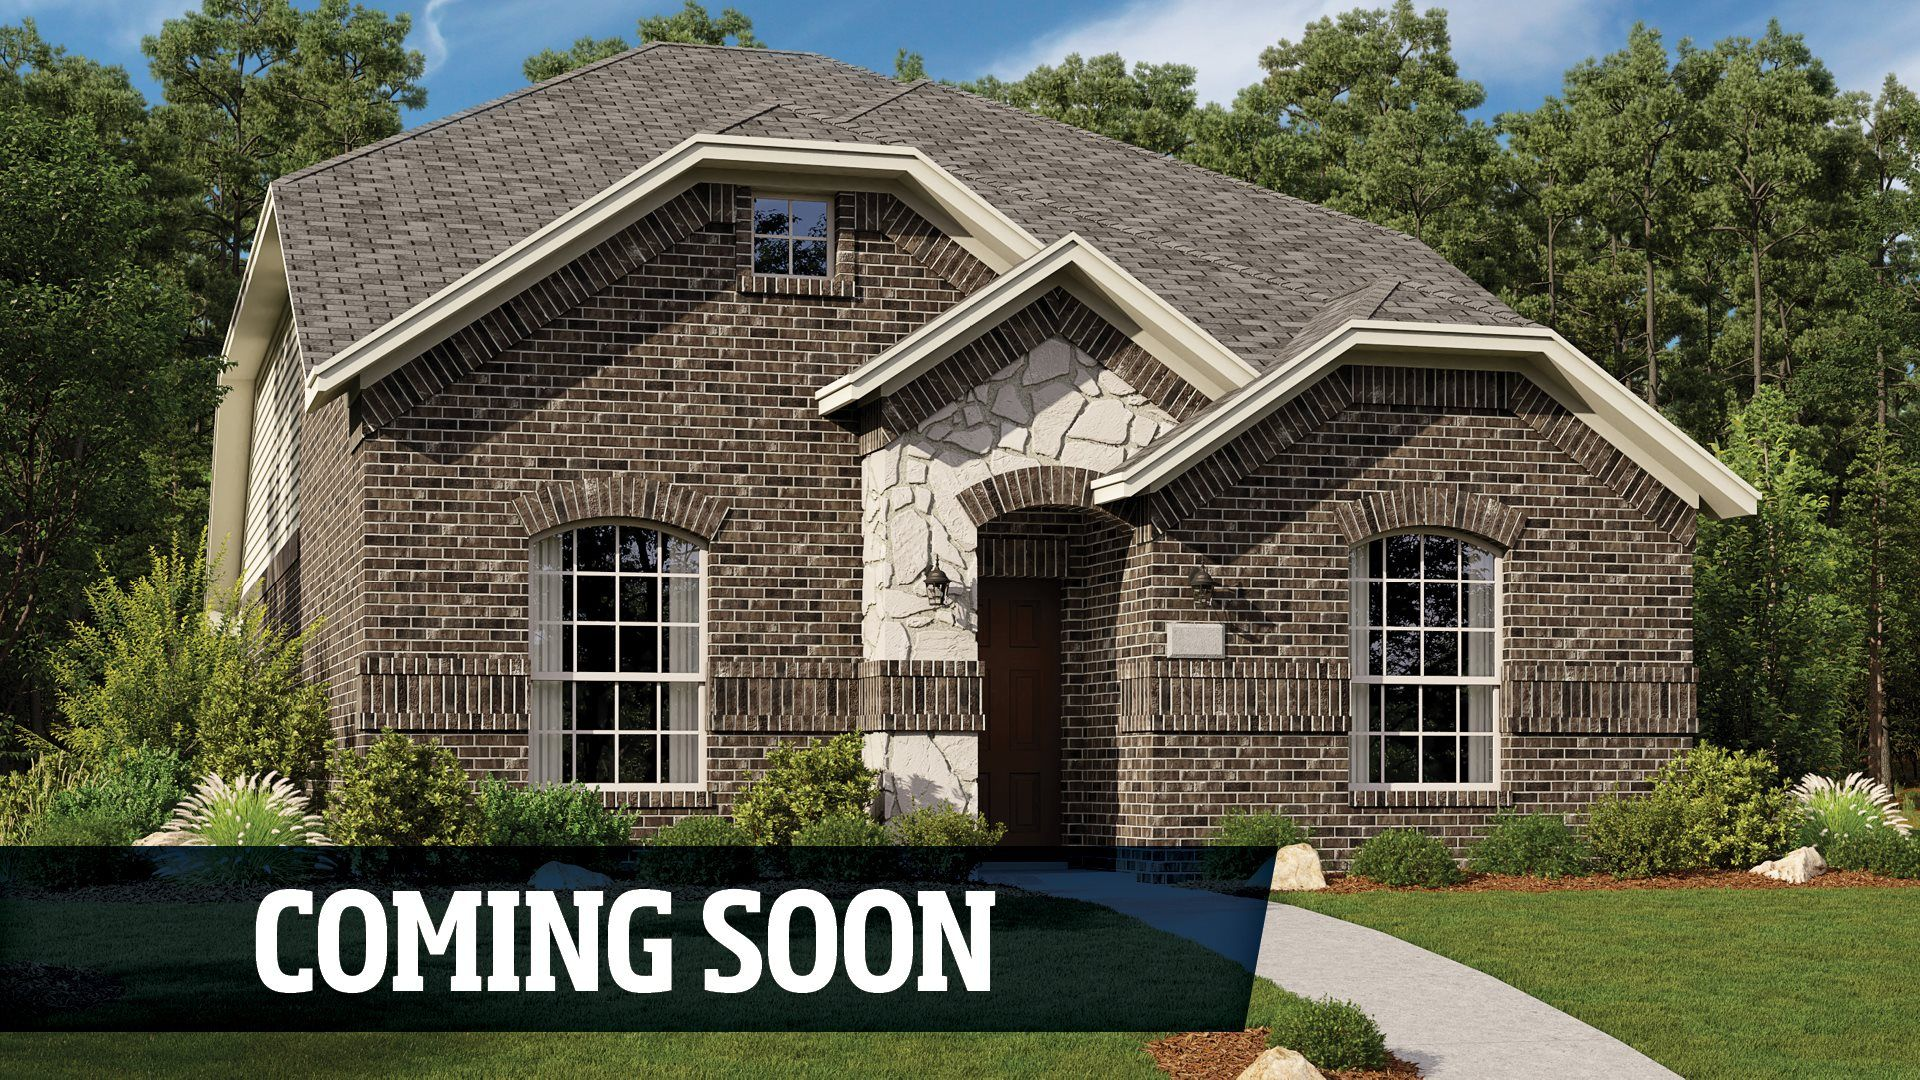 New Homes Coming Soon